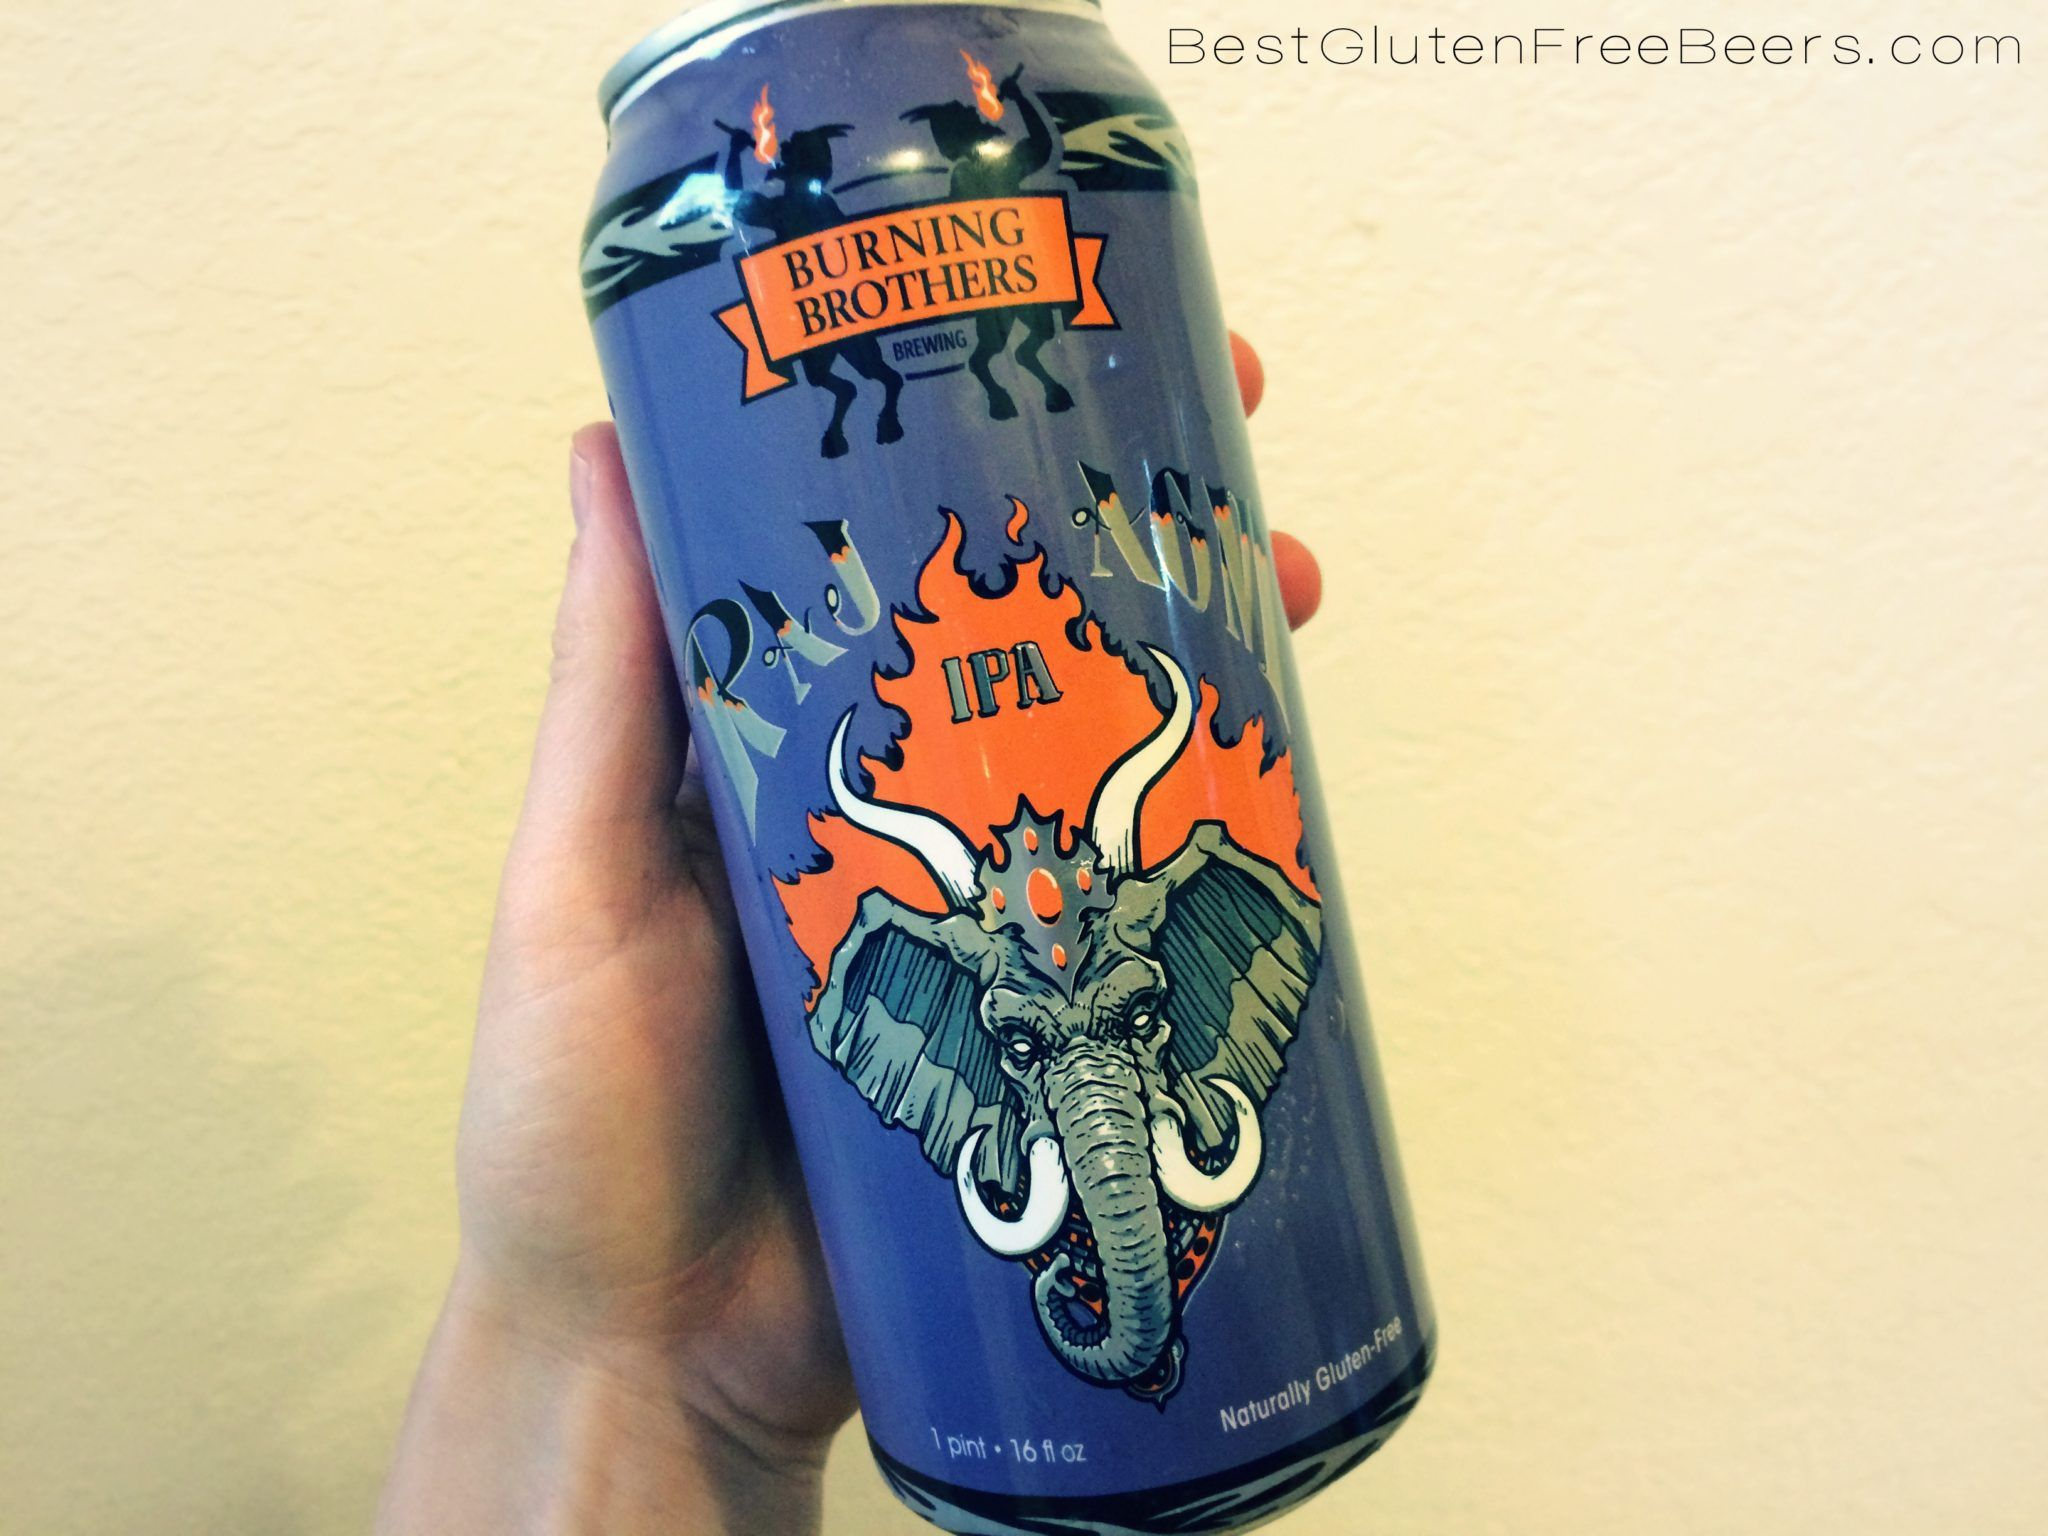 Gluten Free Beer Review: Burning Brothers Brewing Raj-Agni IPA